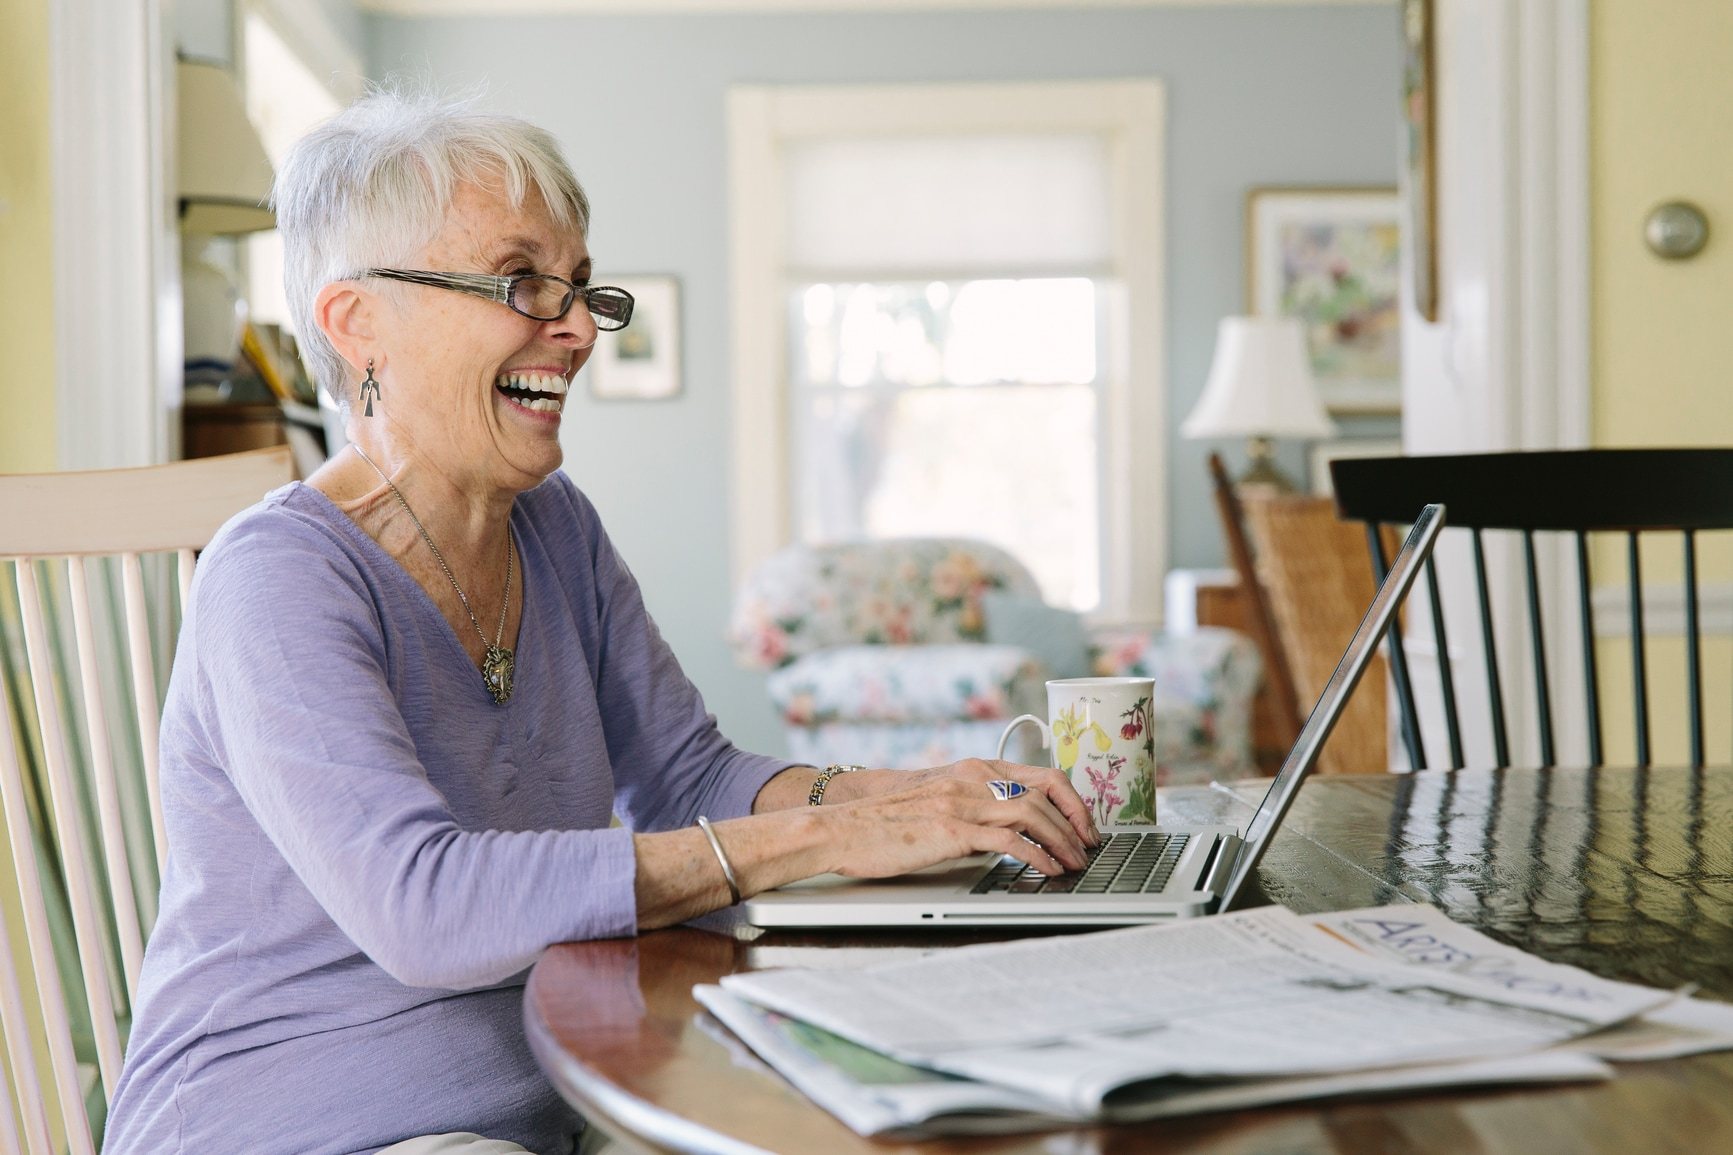 Senior woman on laptop and laughing